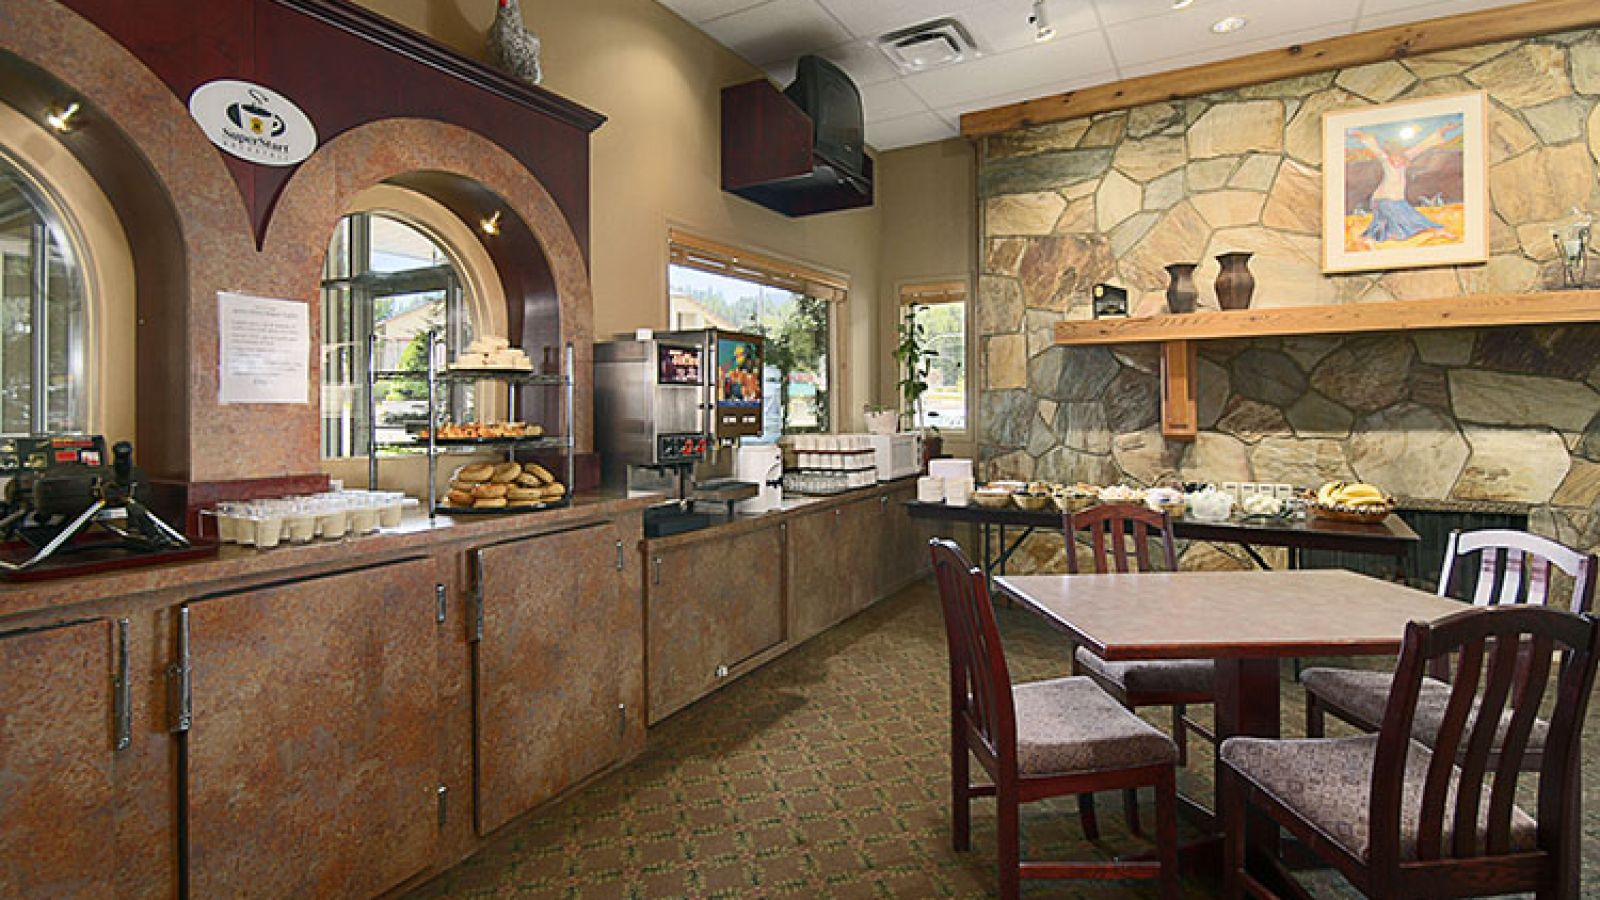 A complimentary breakfast is included with overnight stays.